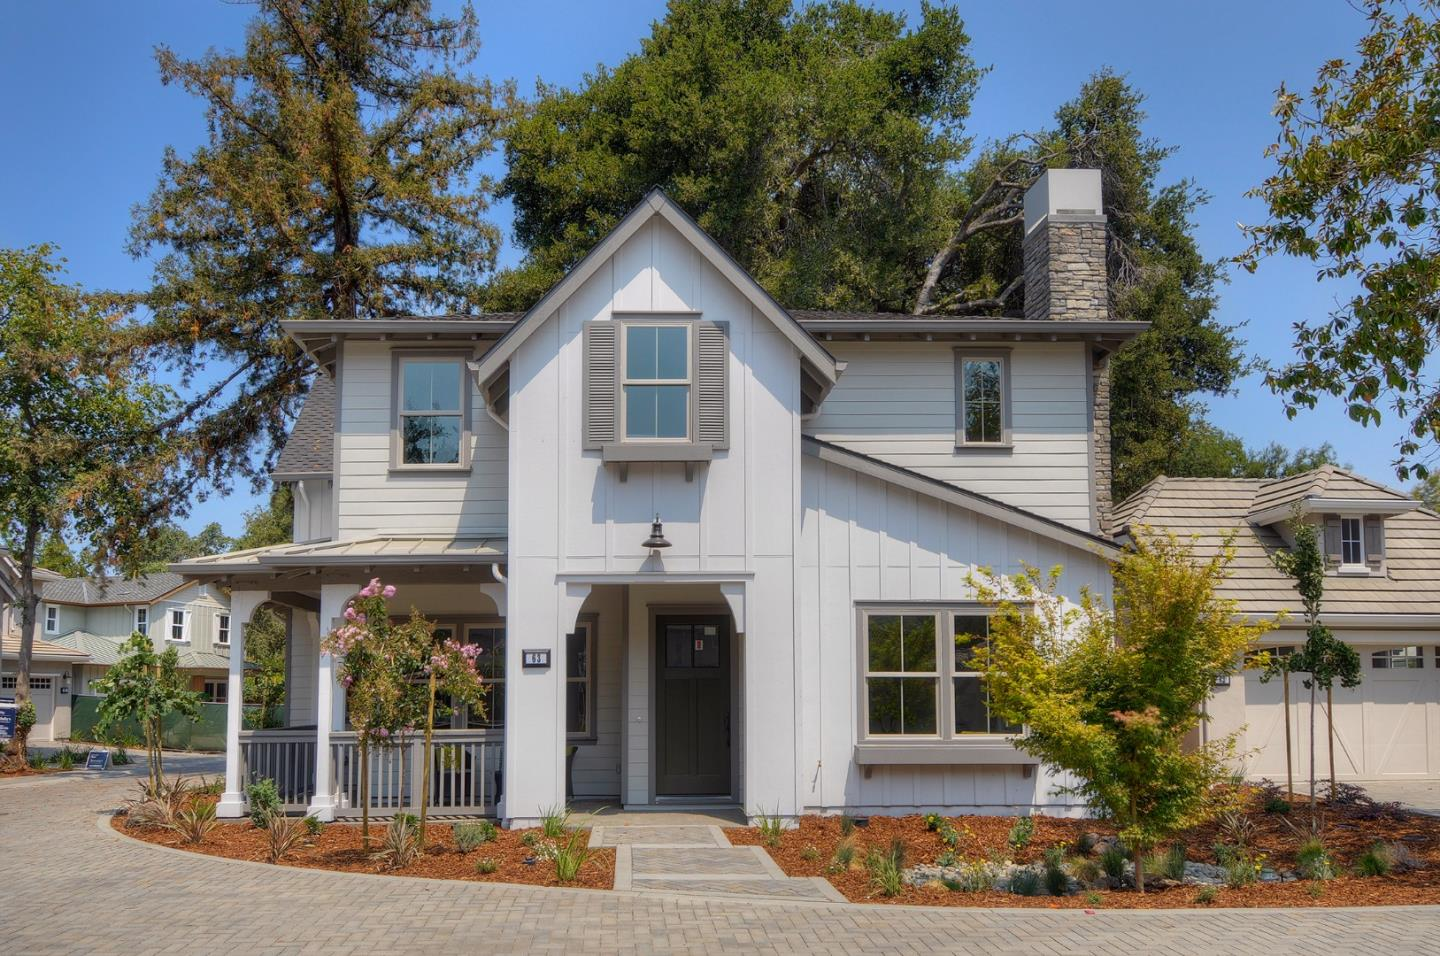 Casa Unifamiliar por un Venta en 63 Liberty Hall Lane 63 Liberty Hall Lane Redwood City, California 94062 Estados Unidos